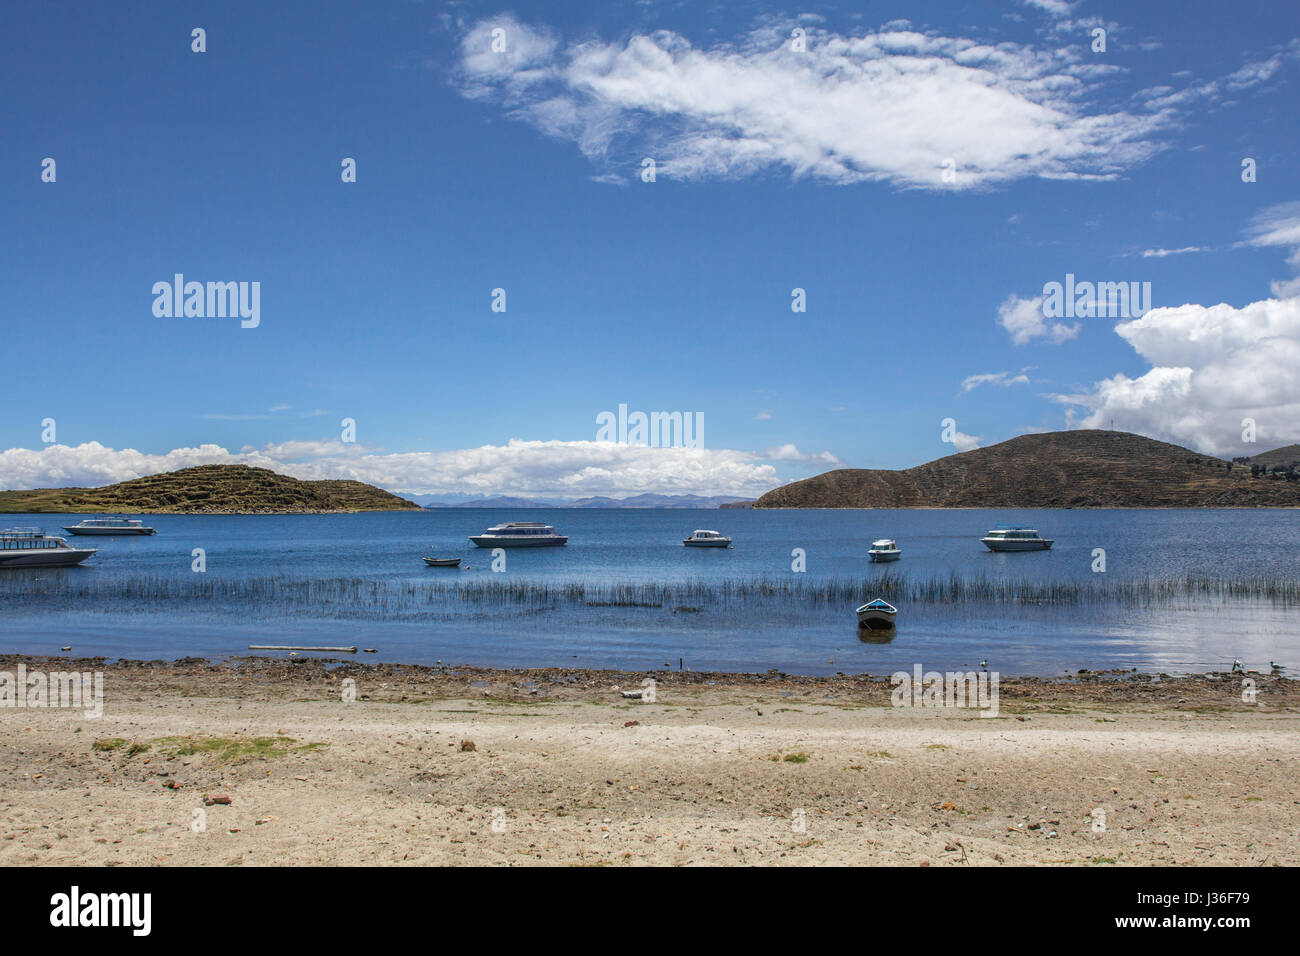 View with lake and boats. Road and boat trip to Isla del Sol, Island of the Sun. Located in Lake Titicaca in Bolivia. - Stock Image